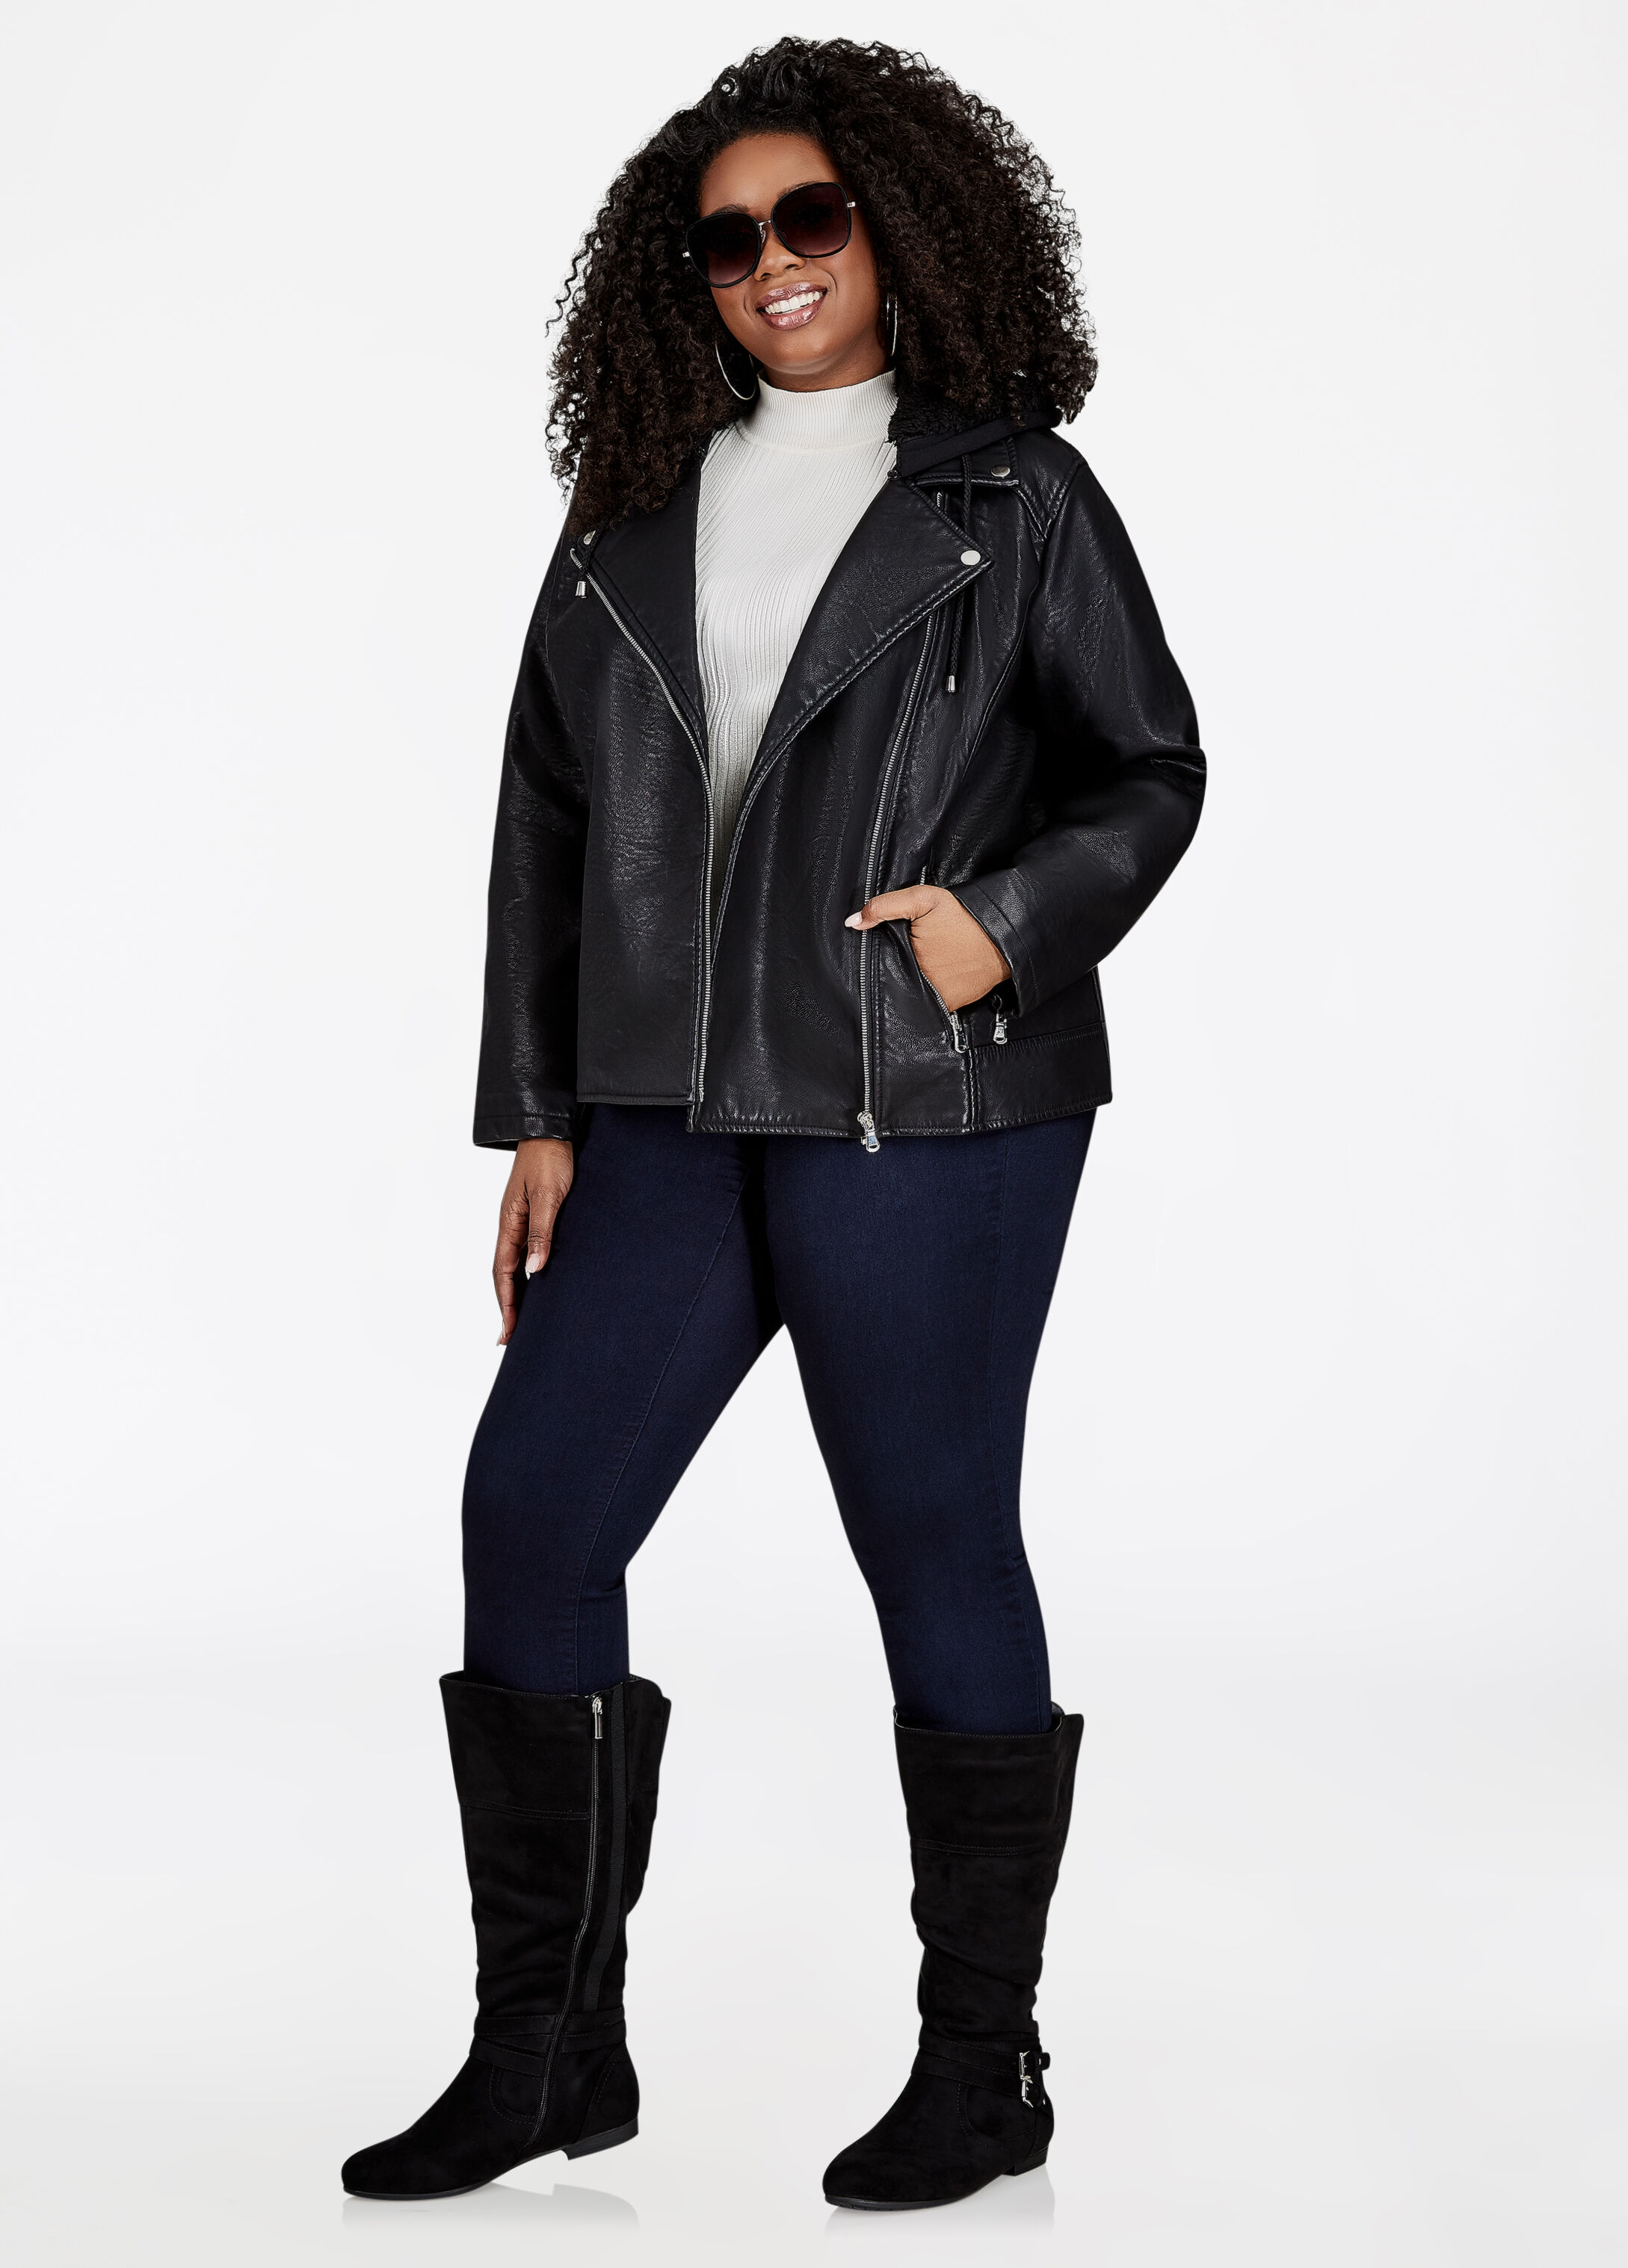 Plus Size Outfits - Moto Jacket with Iconic Legging and Boots